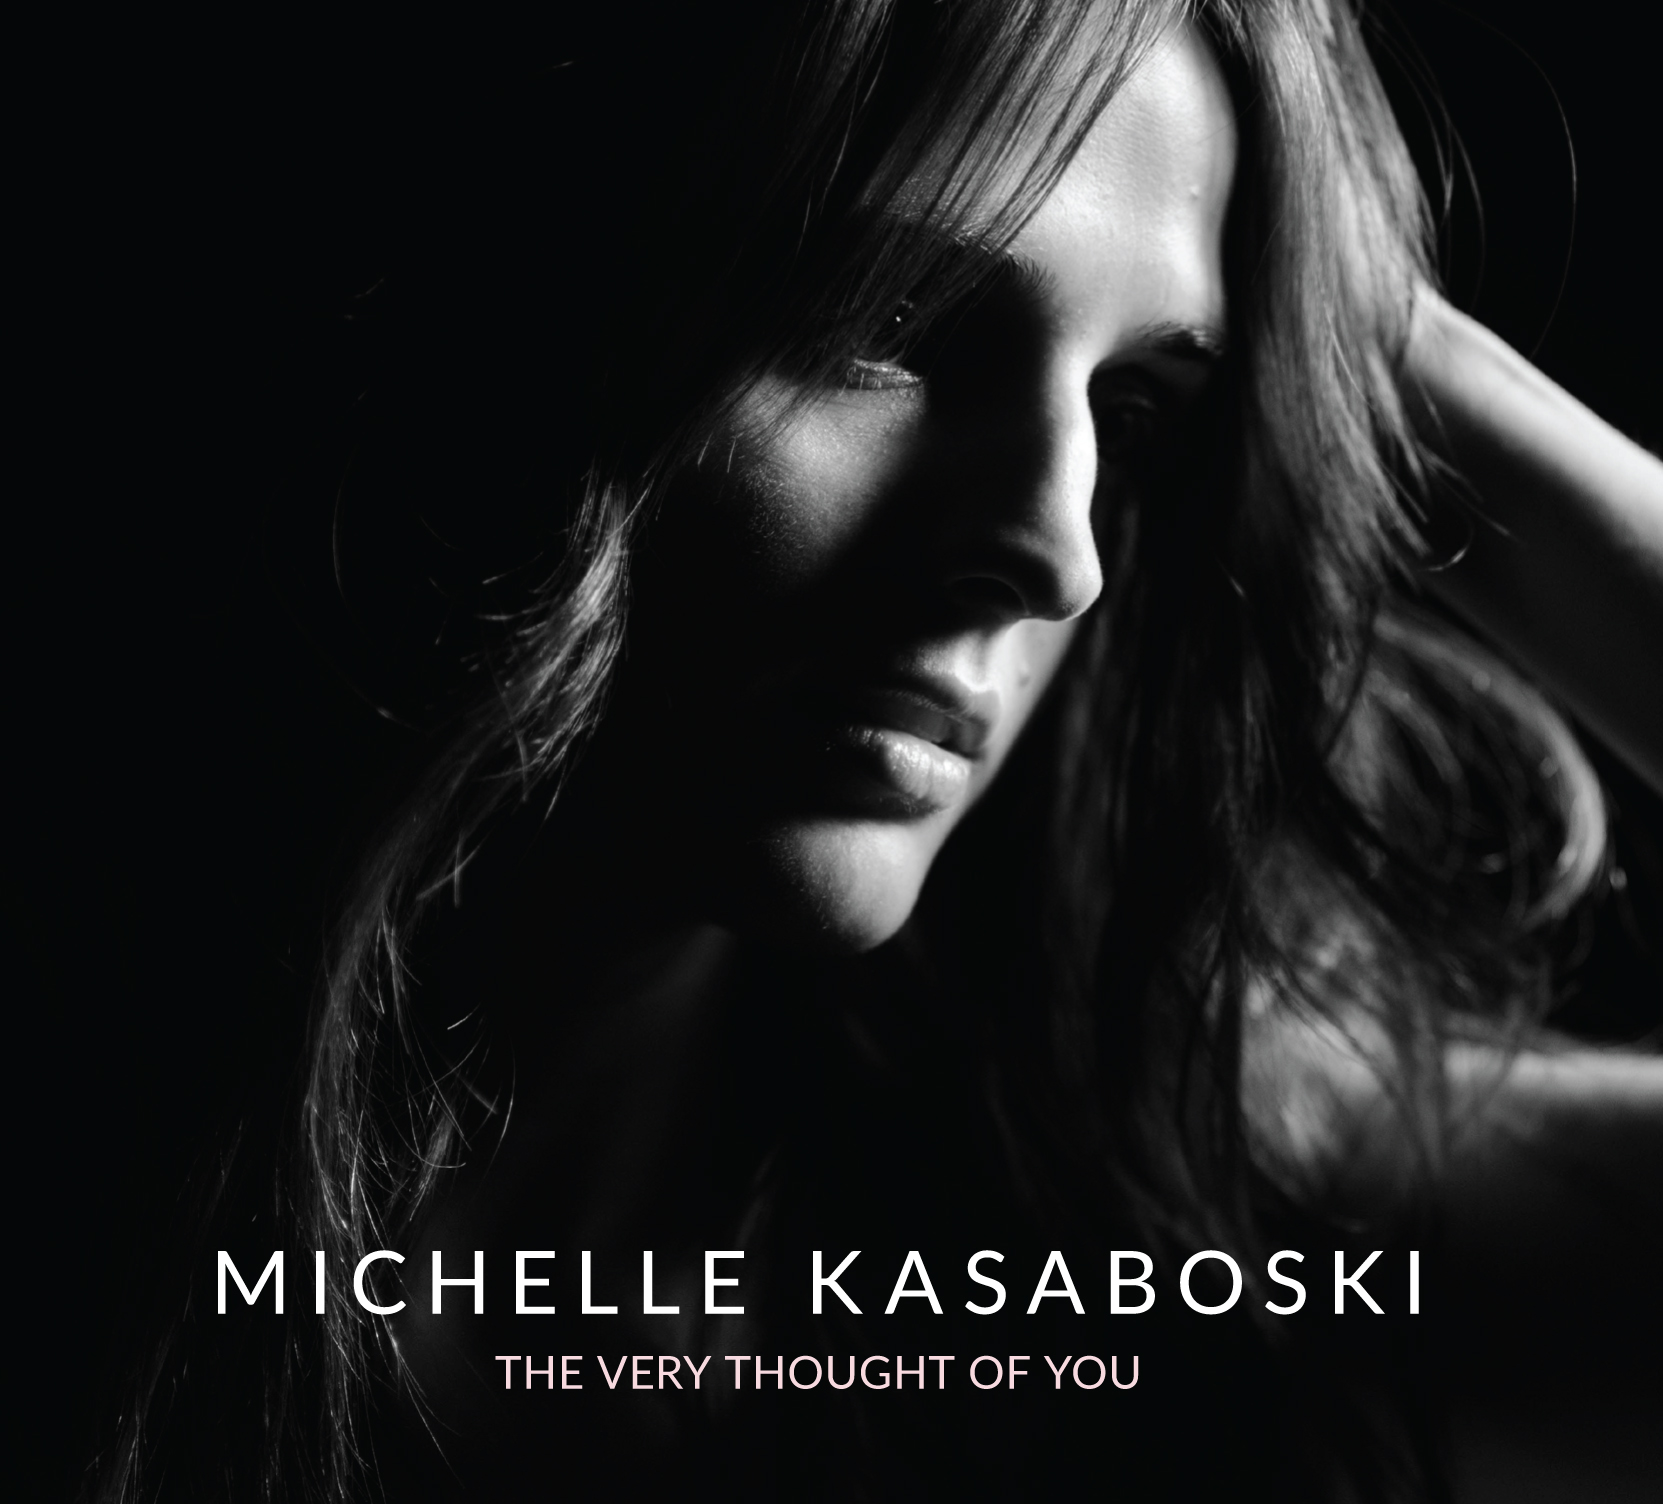 The Very Thought Of You EP (2018) - NOW AVAILABLE FOR PURCHASEOnline: Official Michelle Kasaboski Store - SHOP OFFICIAL ONLINE STORE (or click 'Buy Now' below)In-Store: Now And Then, Cataraqui Town Centre, Kingston, ONDigital Download: iTunes